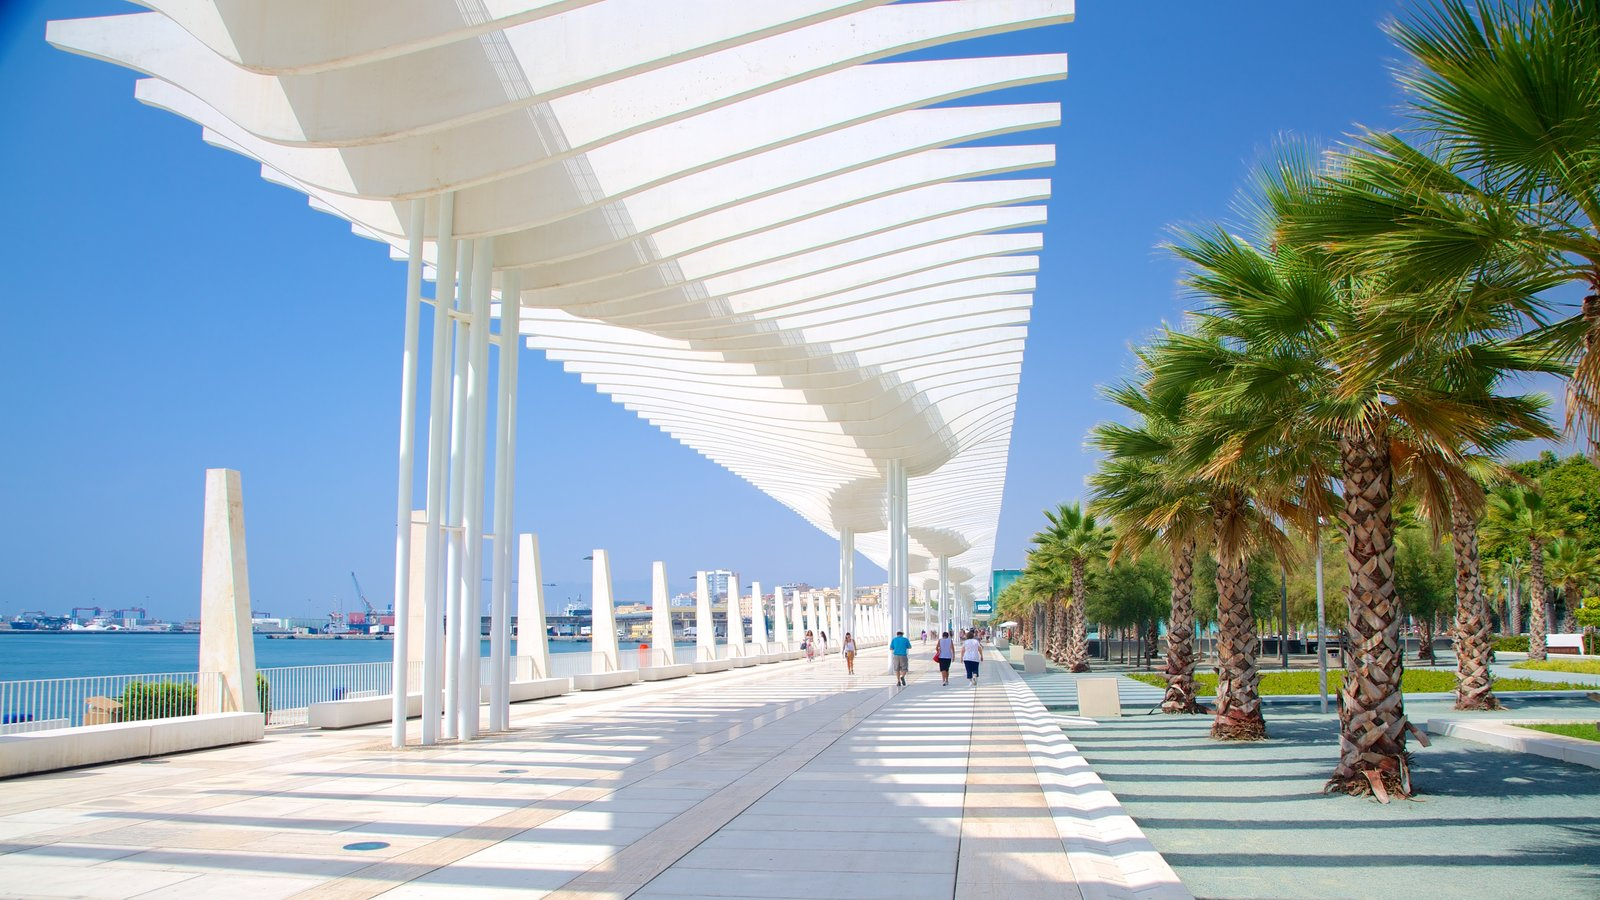 Malaga showing street scenes, modern architecture and tropical scenes